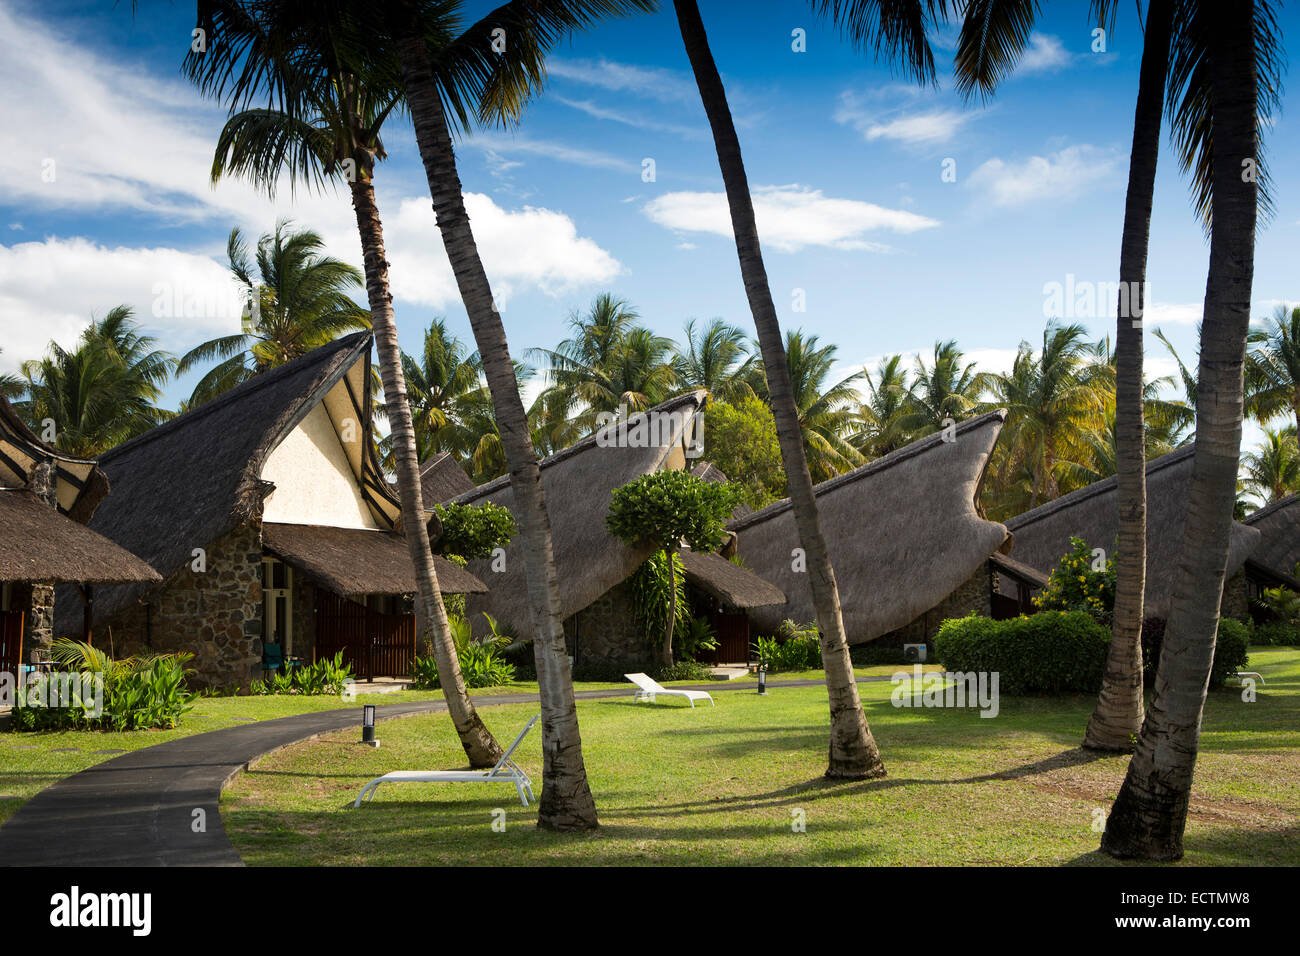 Mauritius, Flic en Flac, La Pirogue Hotel, thatched, boat shaped rooms in tropical garden Stock Photo